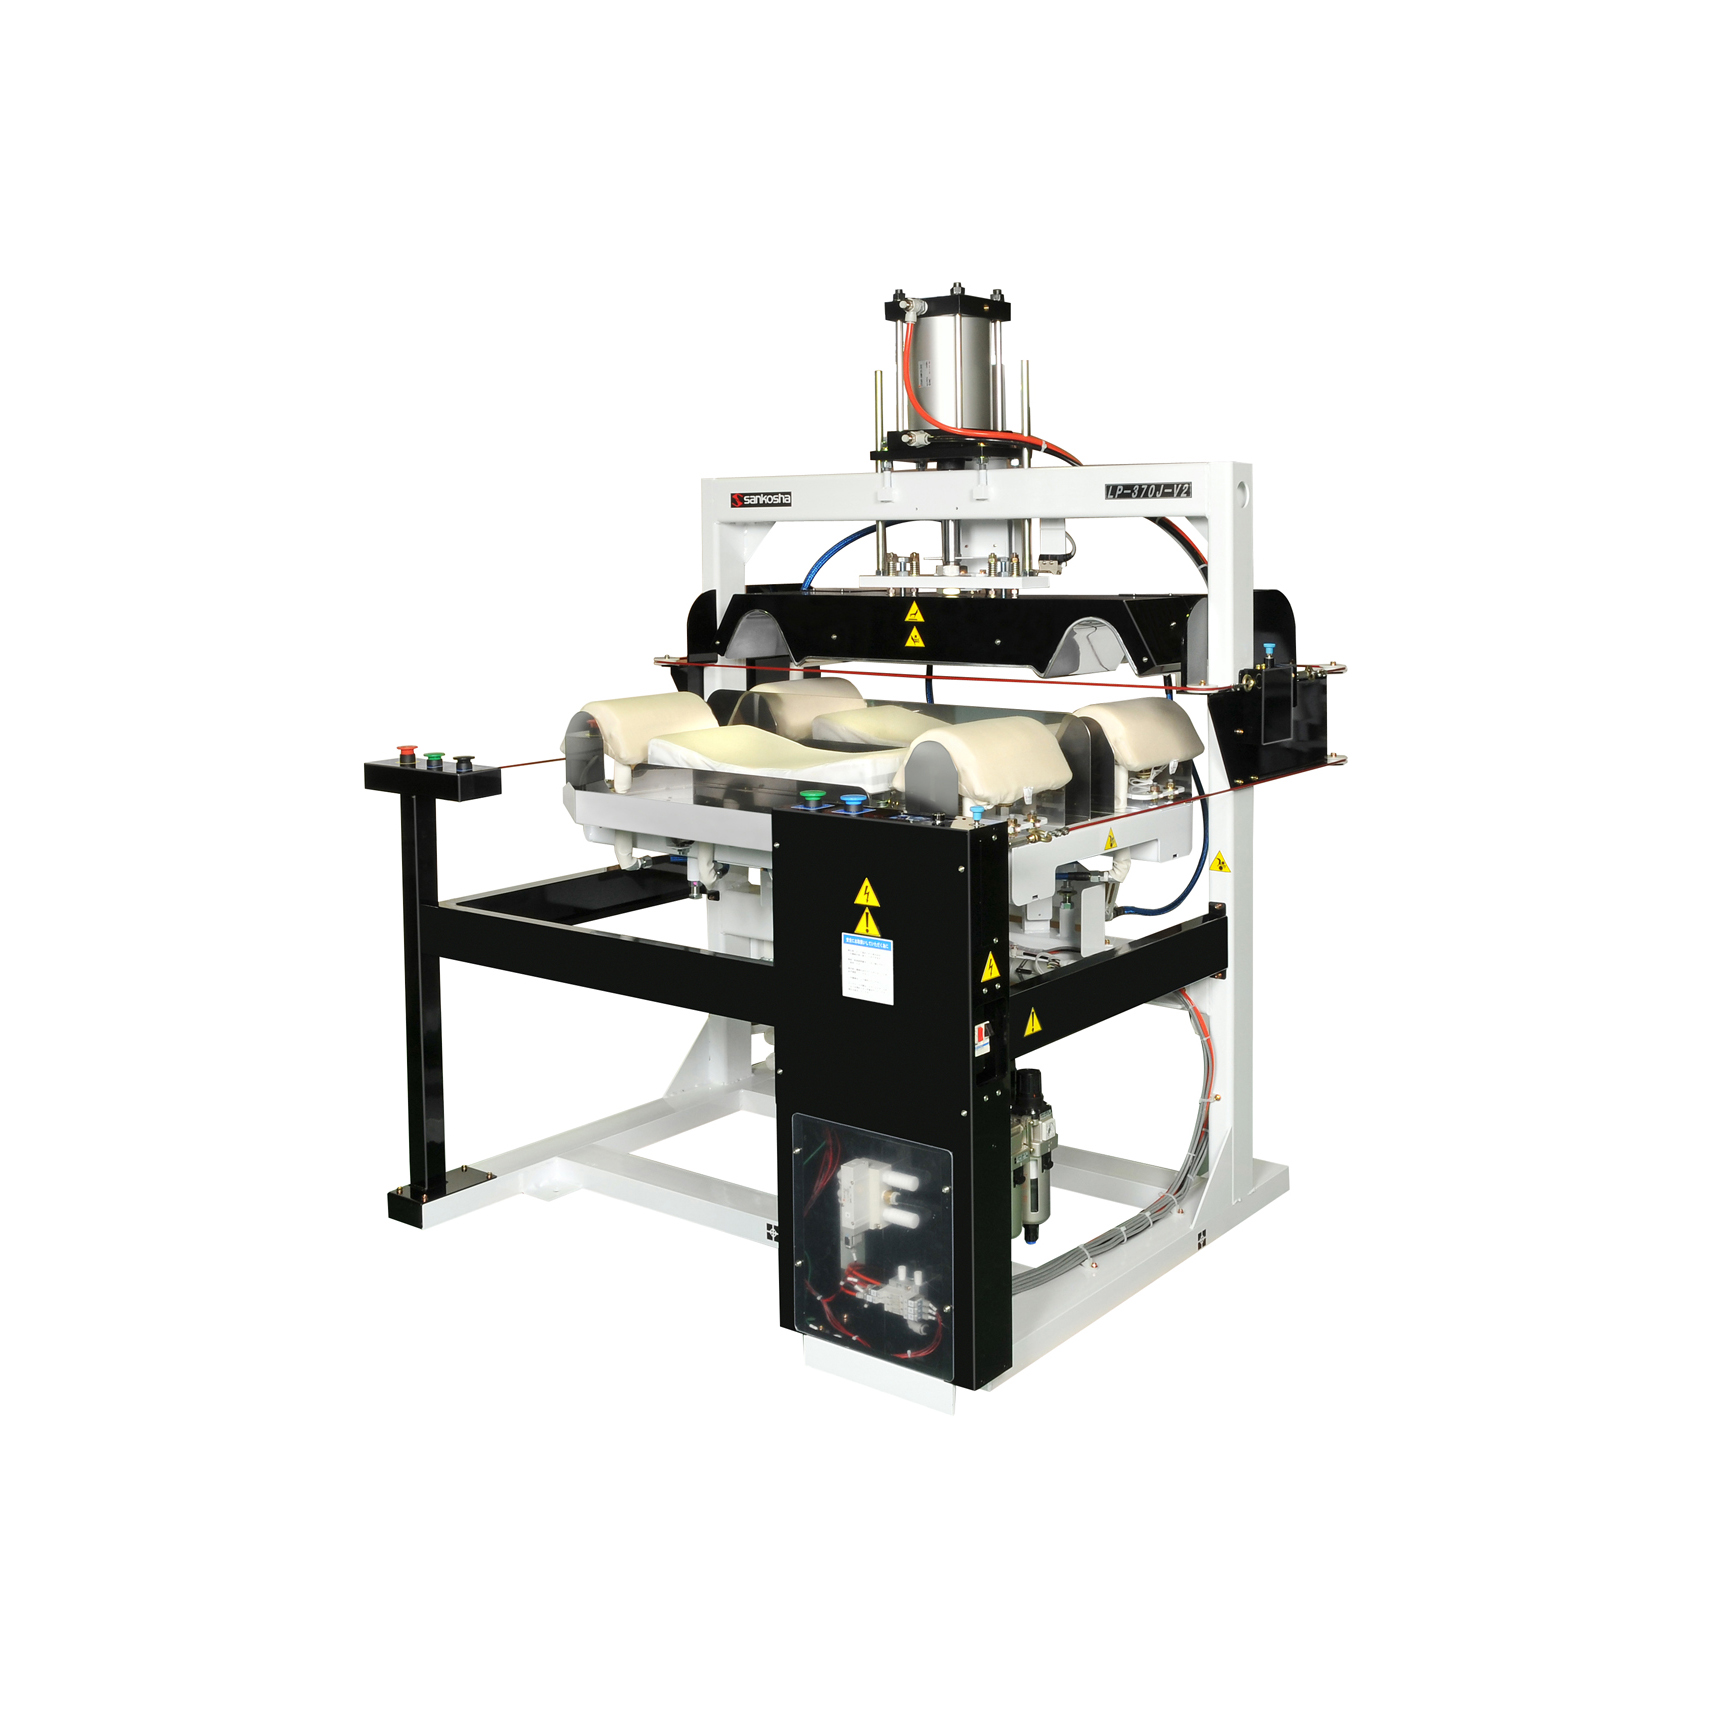 Sankosha LP-370J-V2 Quadruple Collar-Cuff Press